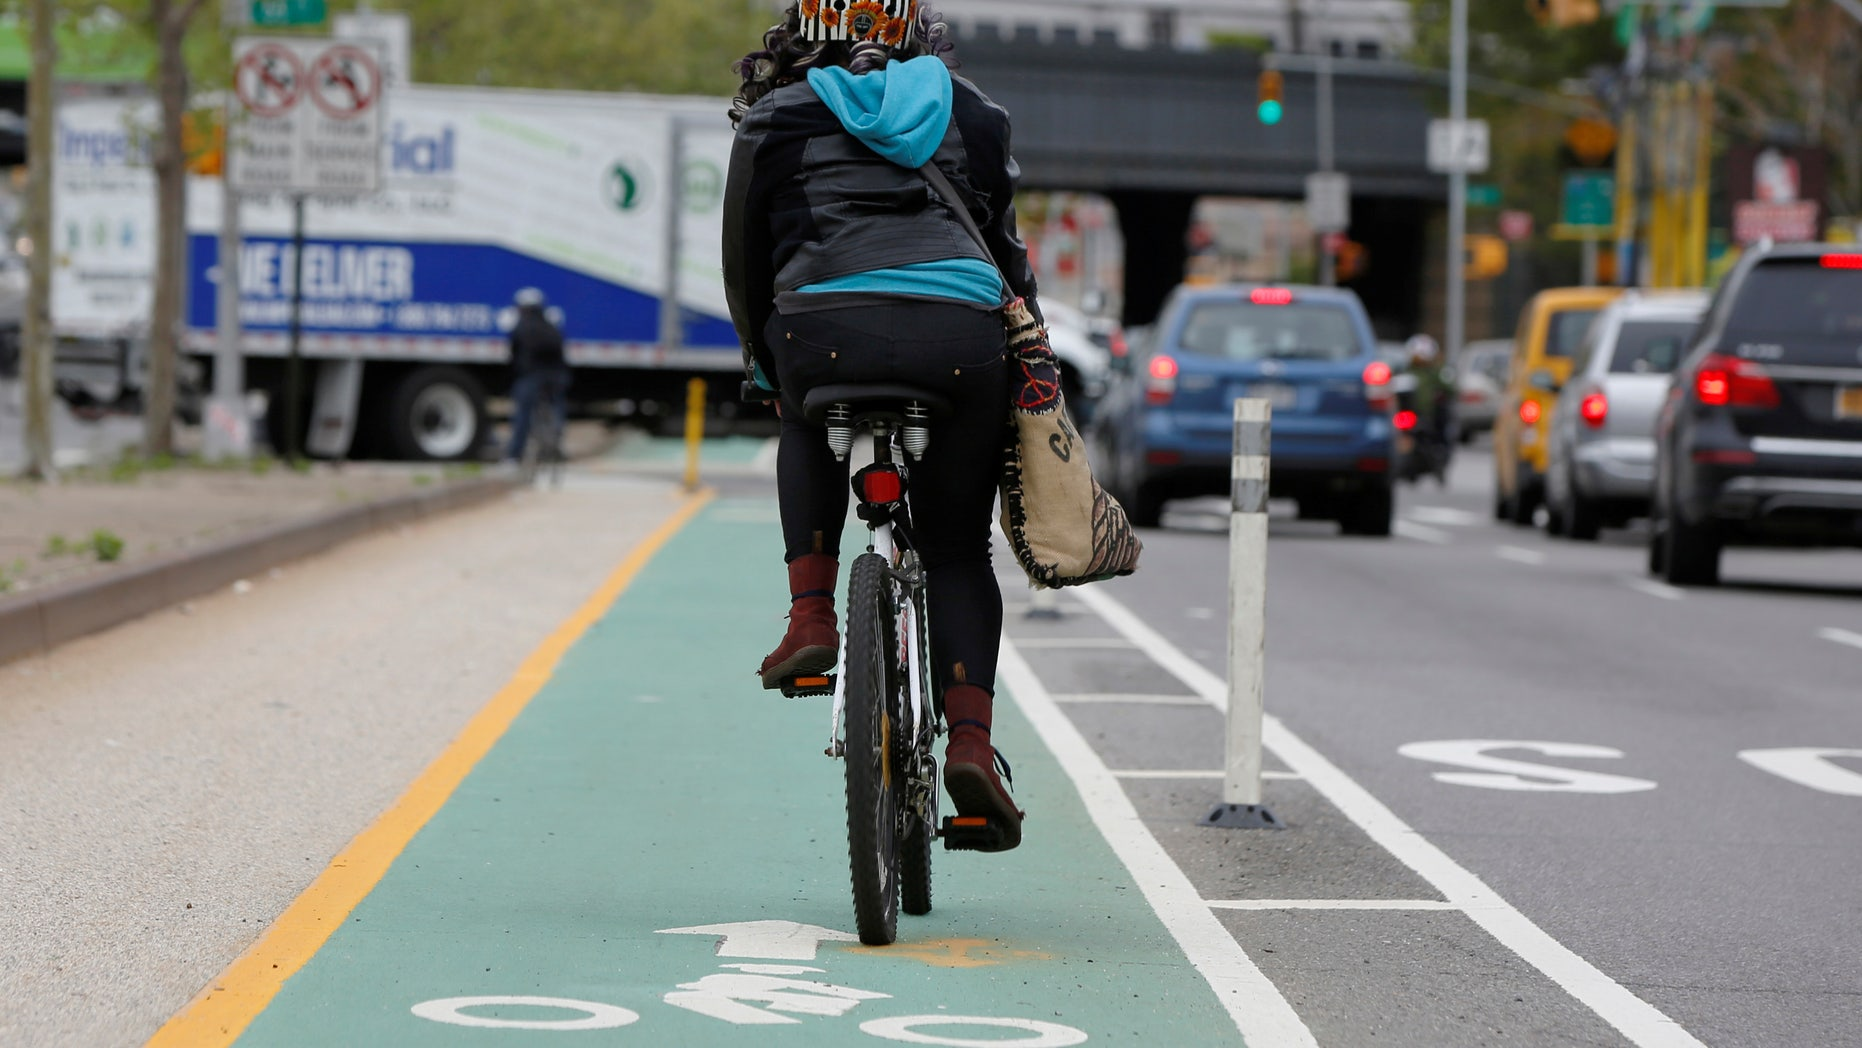 A woman rides a bicycle along a designated bike lane on Queens Boulevard in the borough of Queens in New York, U.S., May 5, 2016.